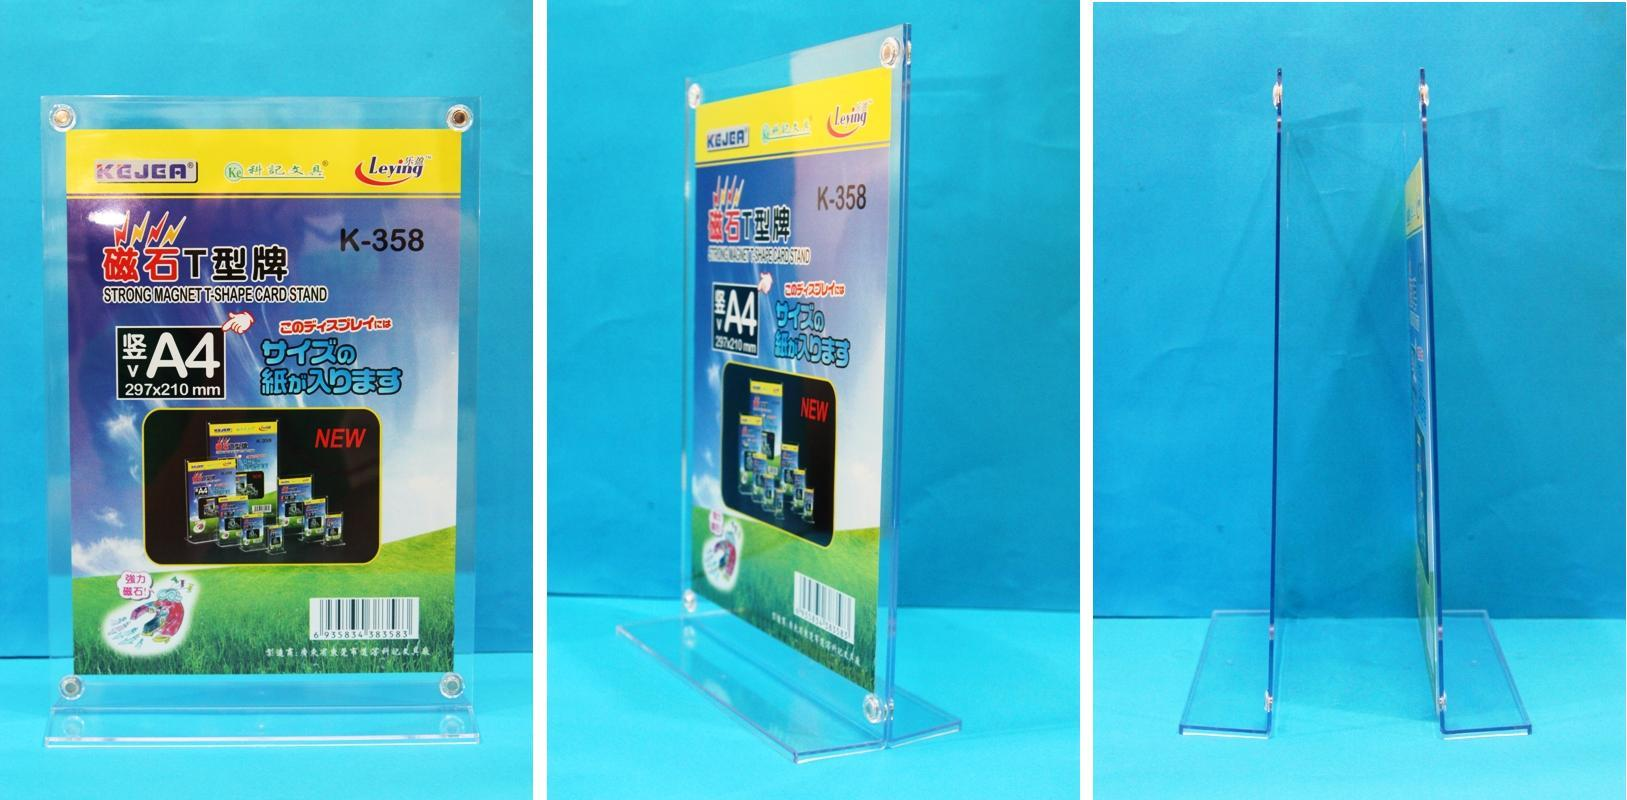 Acrylic A4 Paper Stand A4 Paper Display Stand Holder Magnetic